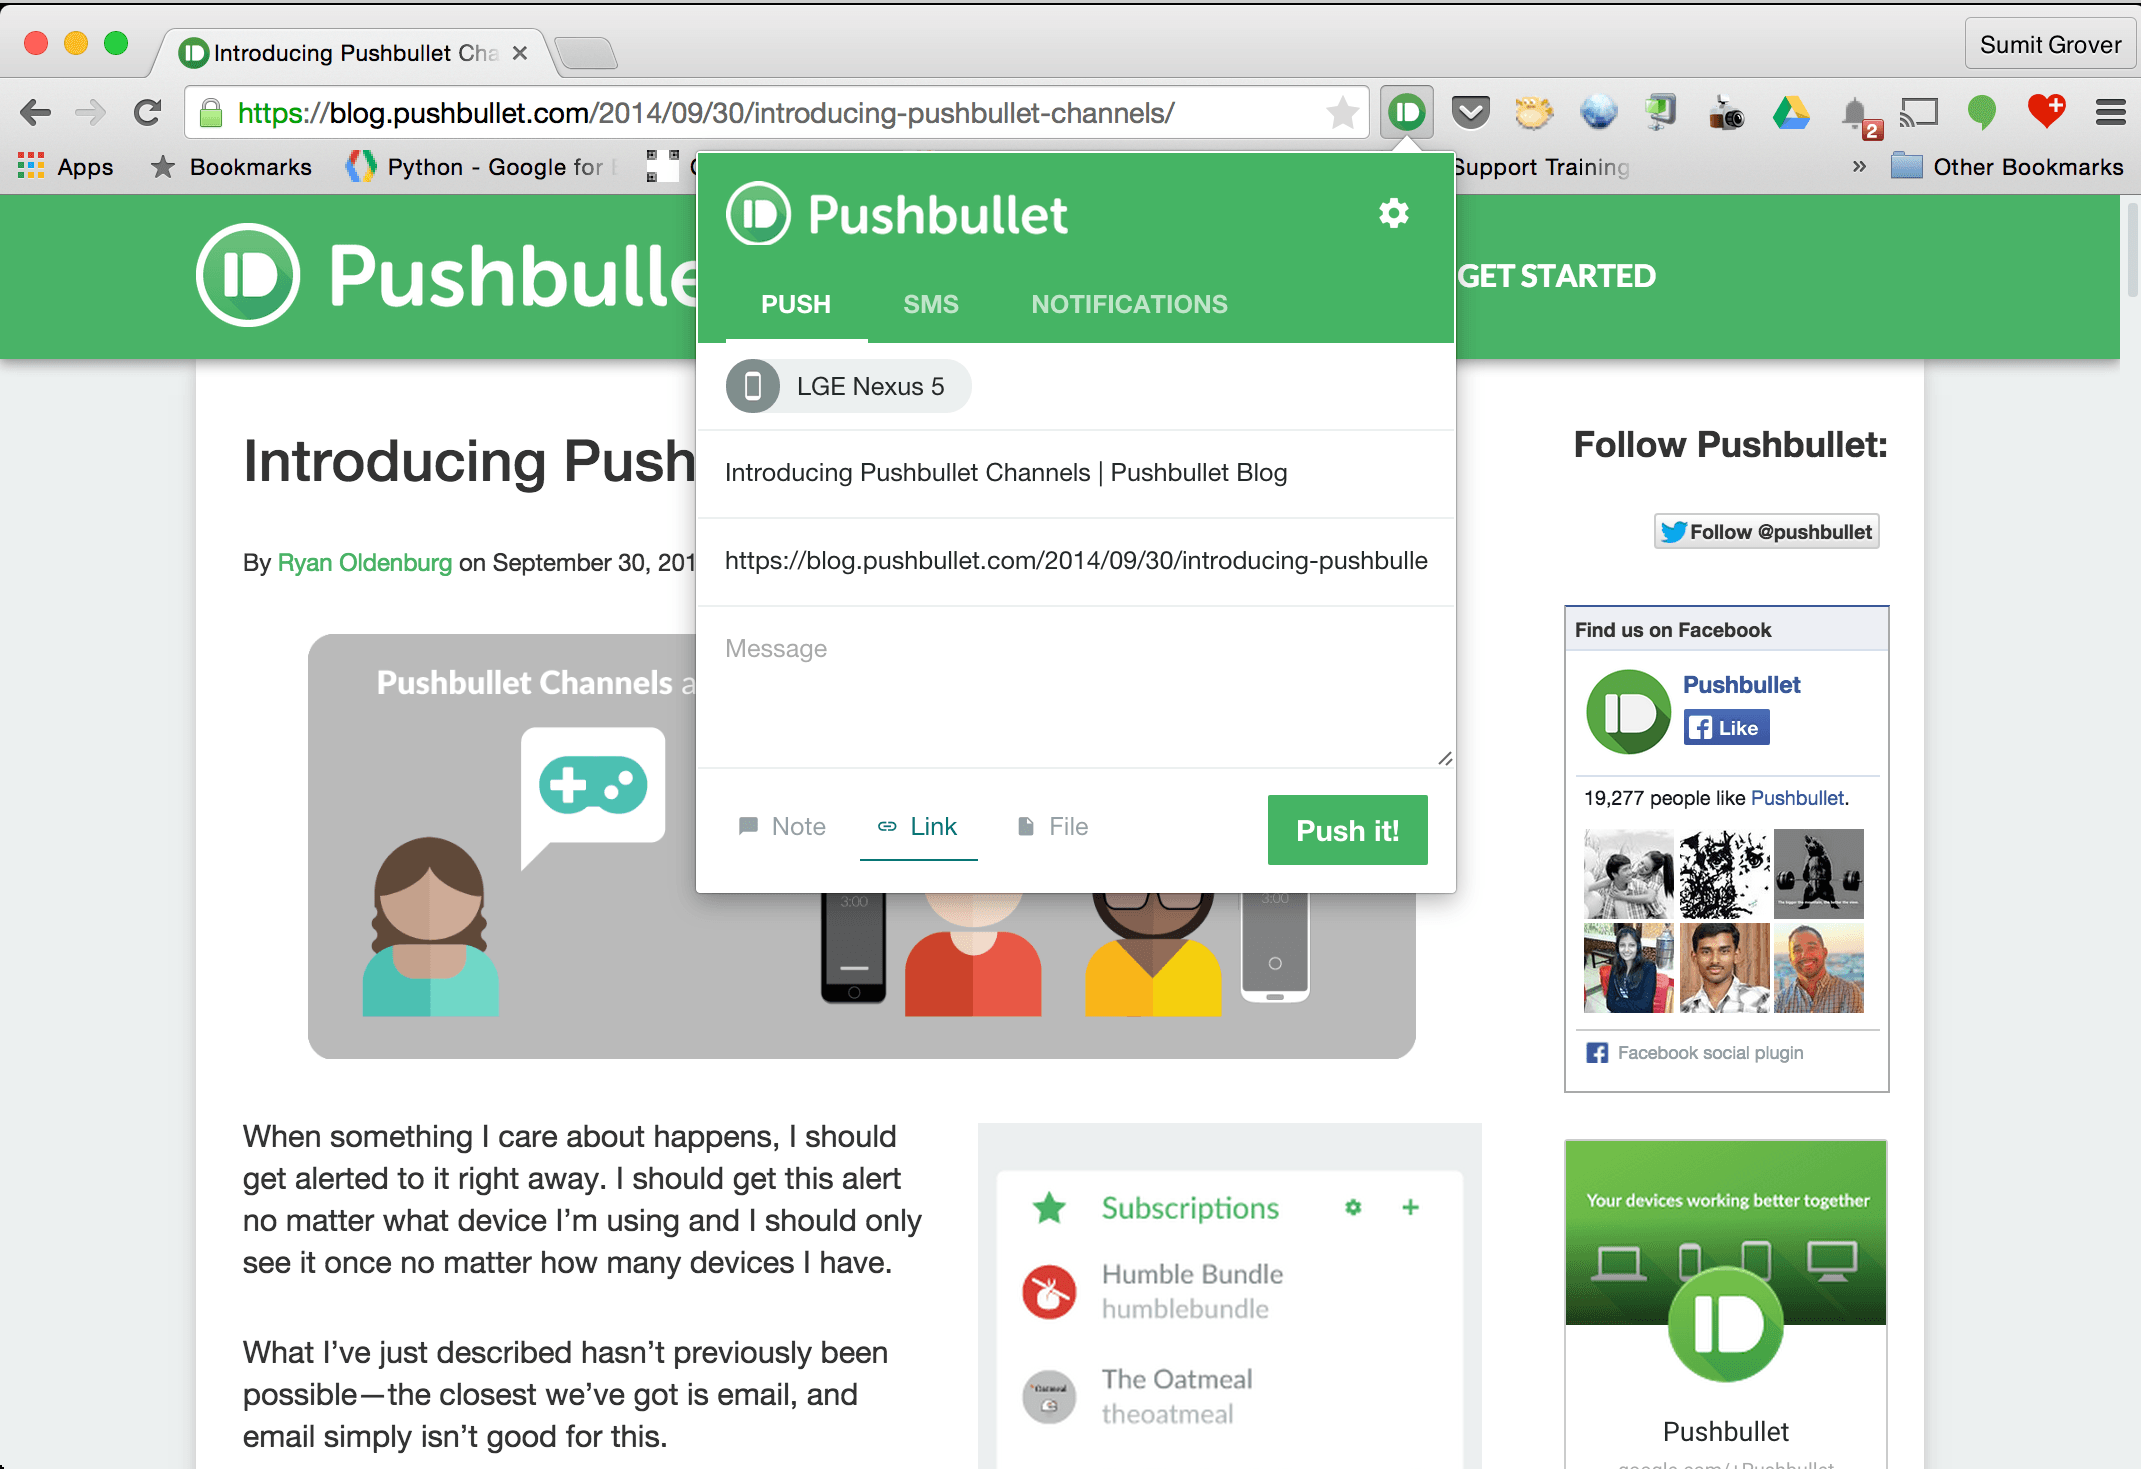 Pushbullet - Reviews on Top